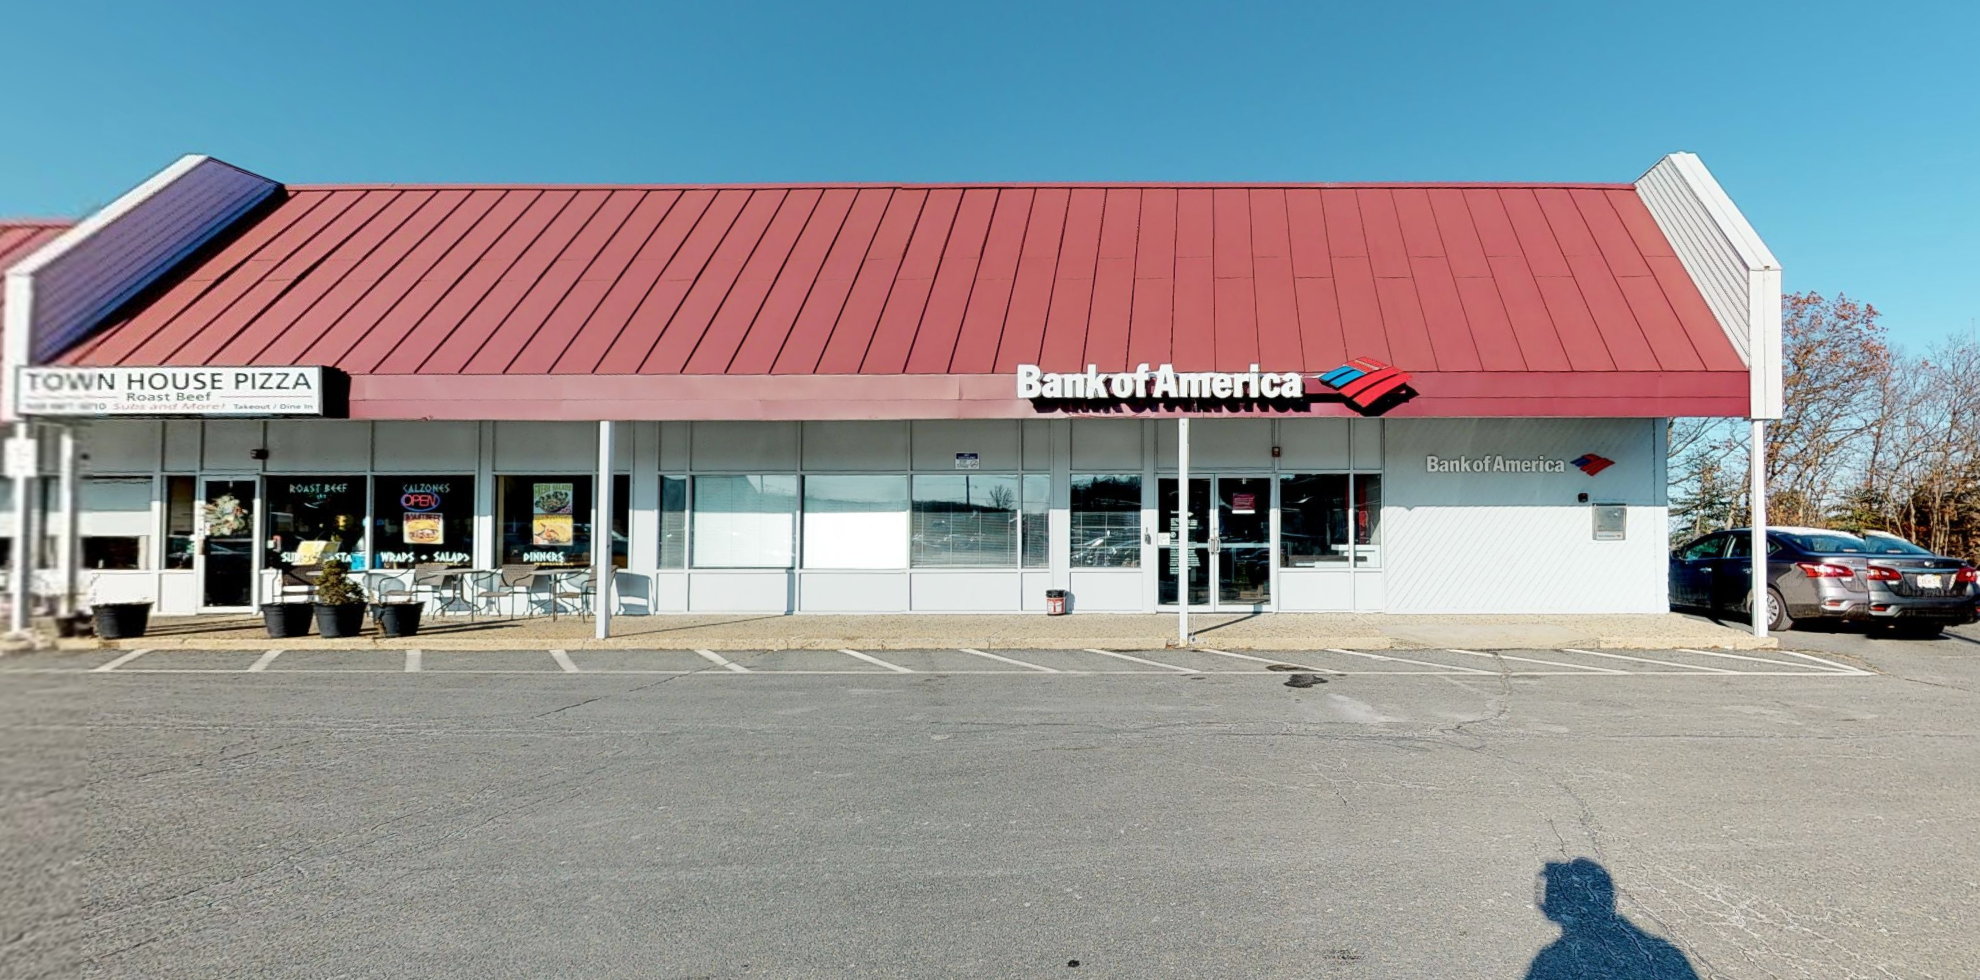 Bank of America financial center with drive-thru ATM   300 Eliot St, Ashland, MA 01721